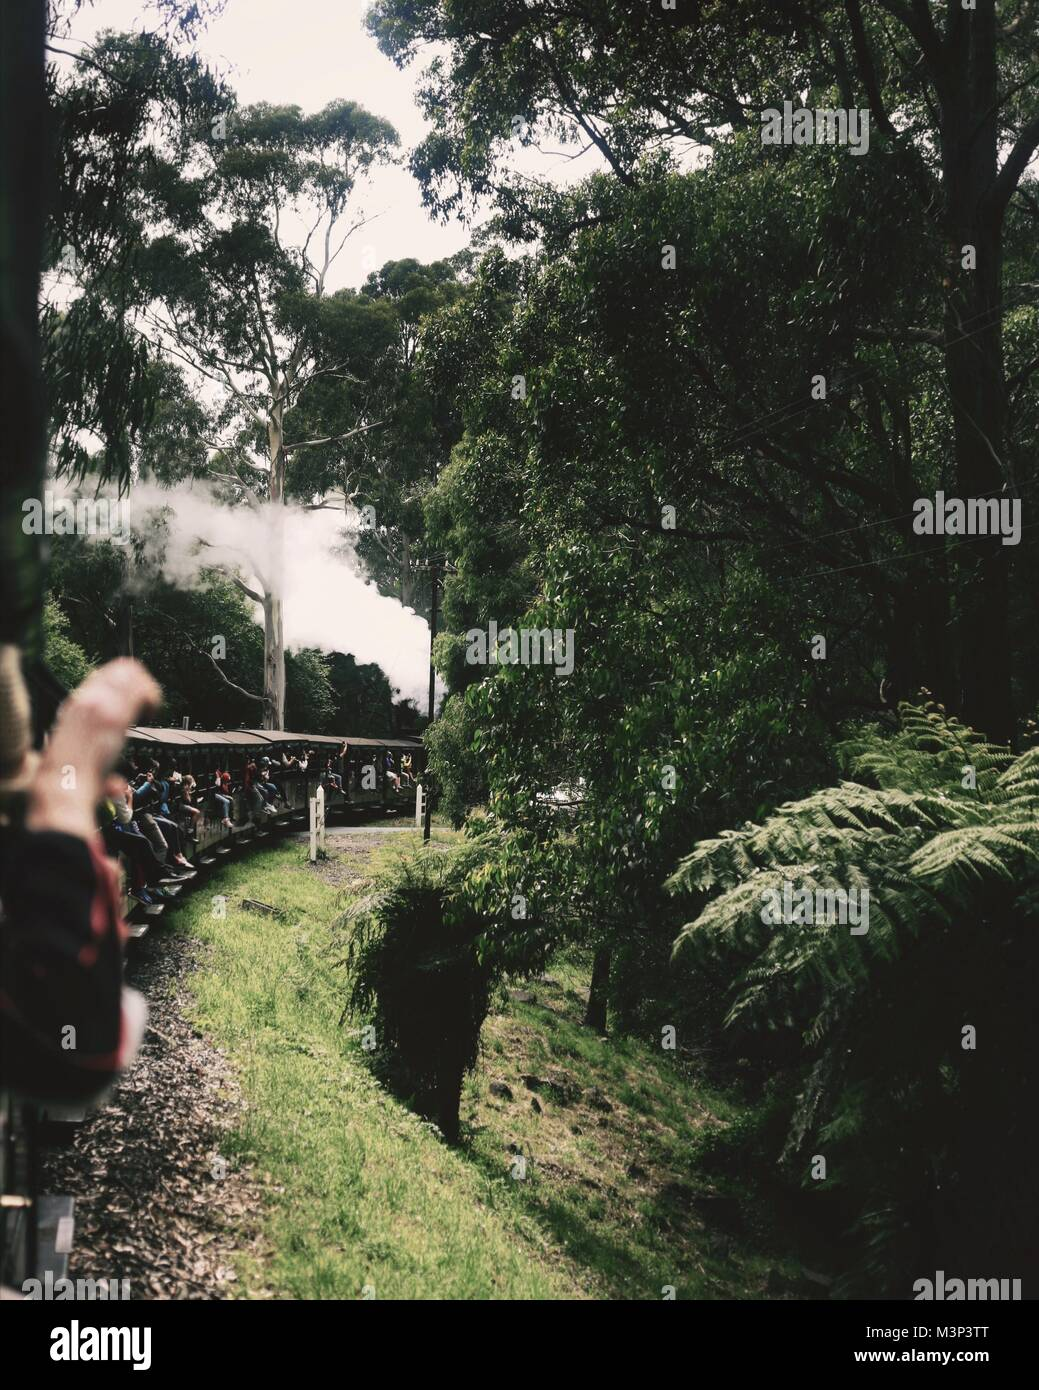 A view from the Puffing Billy train, the oldest railway in Australia - Stock Image